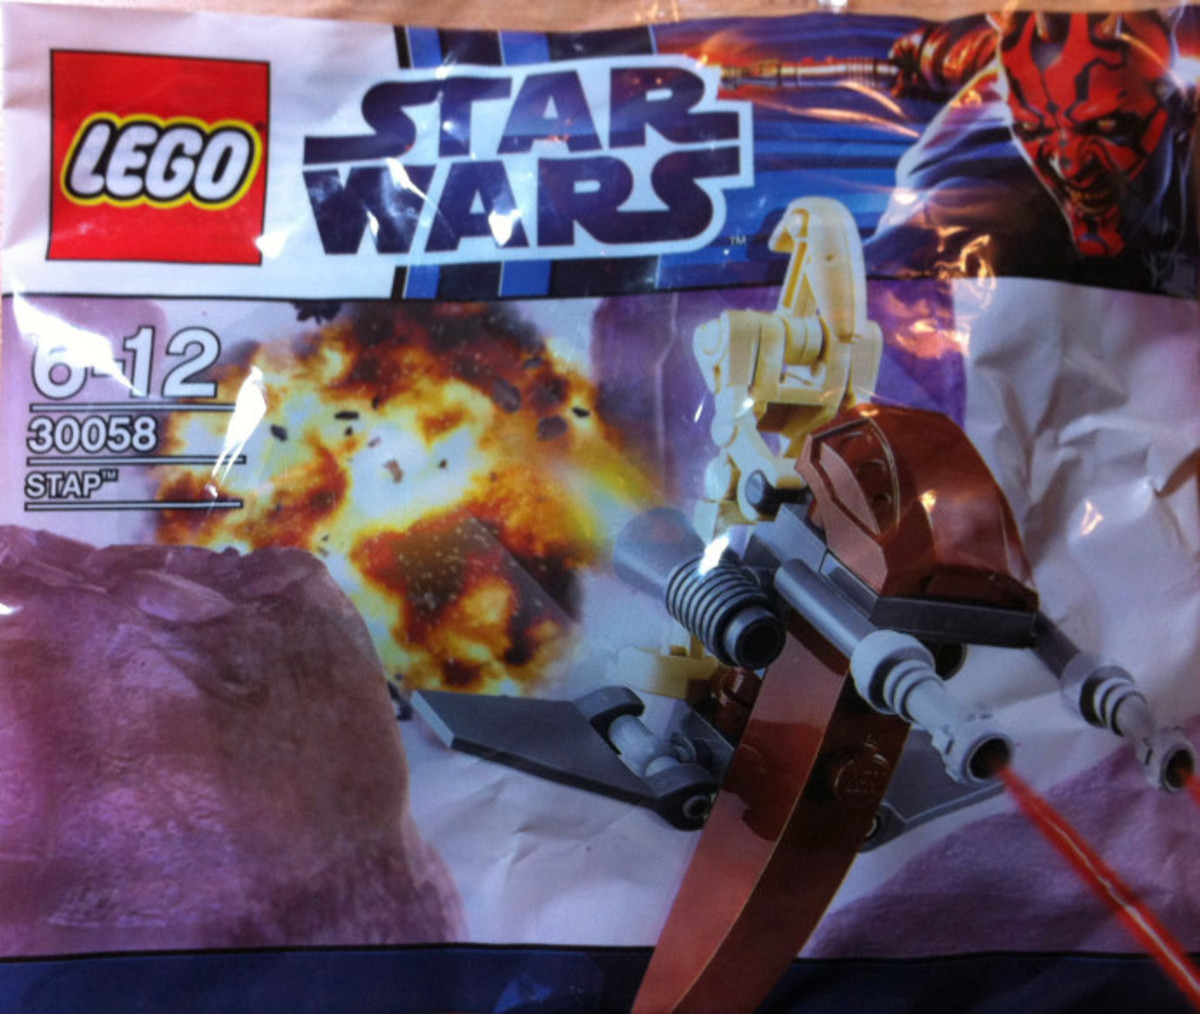 LEGO Star Wars STAP 30058 Bag